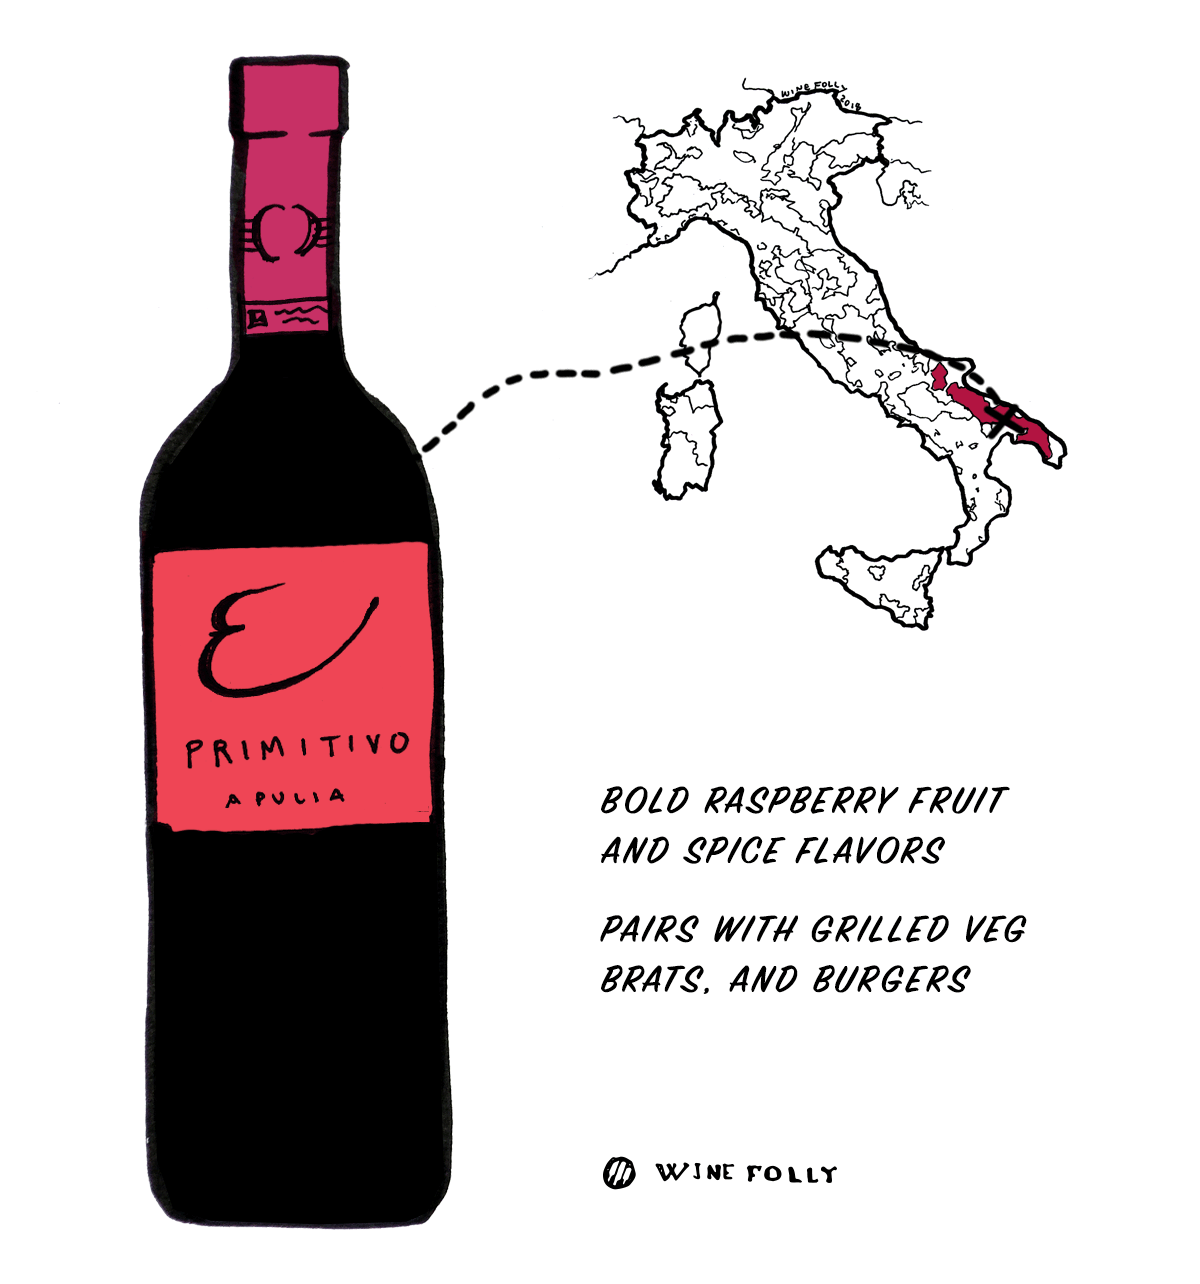 Primitivo red wine grape from Italy - Great choice for beginners into Italian wine - Illustration by Wine Folly